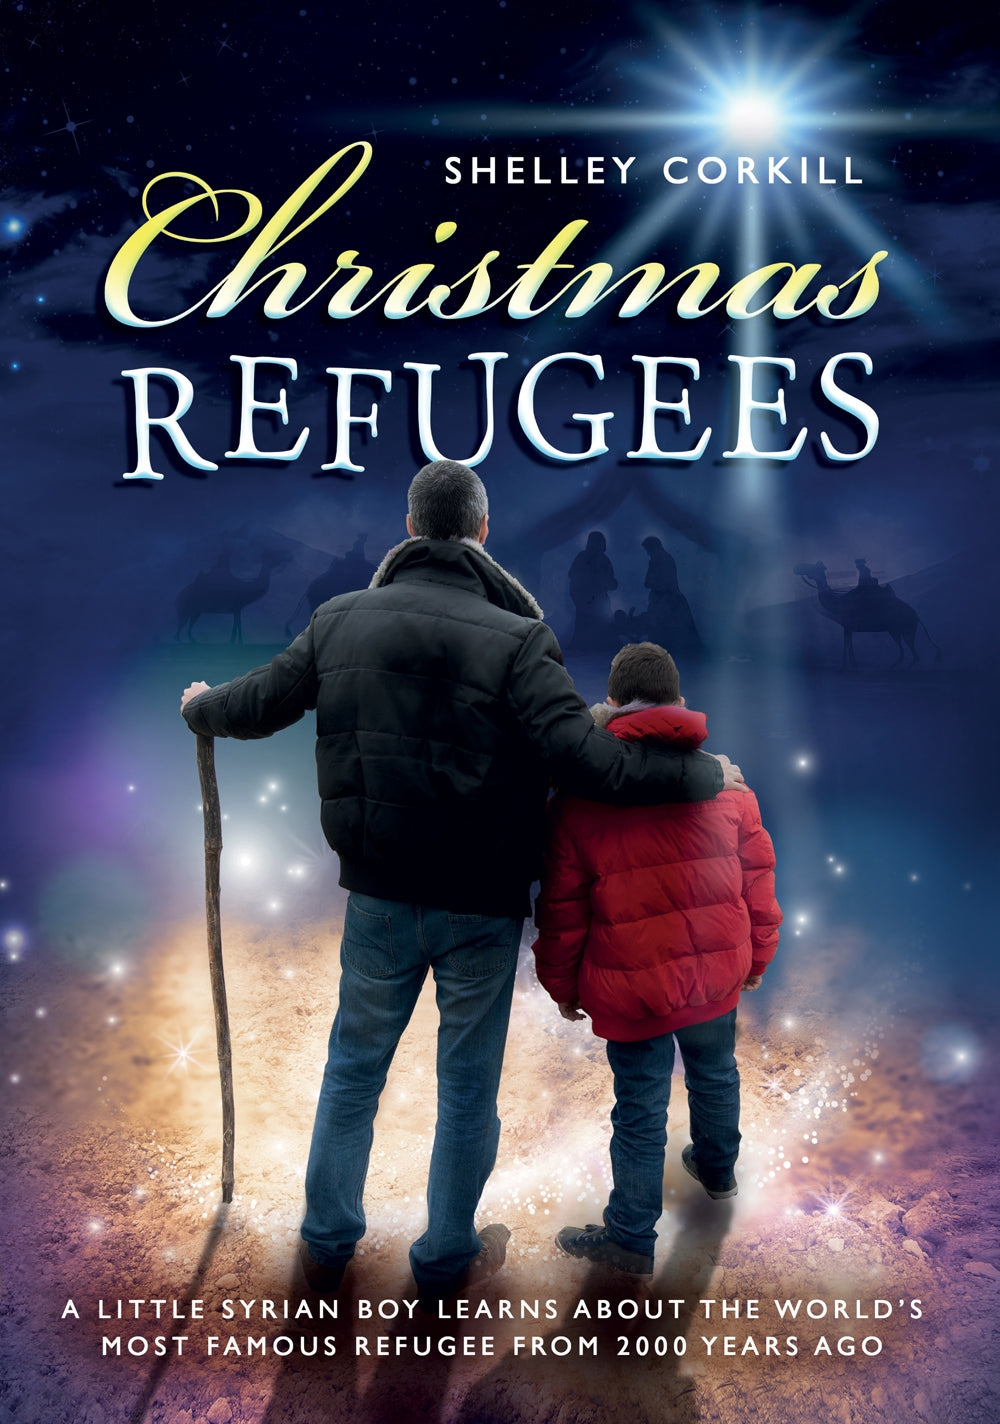 Christmas Refugees Book And Cd New For 2019Christmas Refugees Book And Cd New For 2019